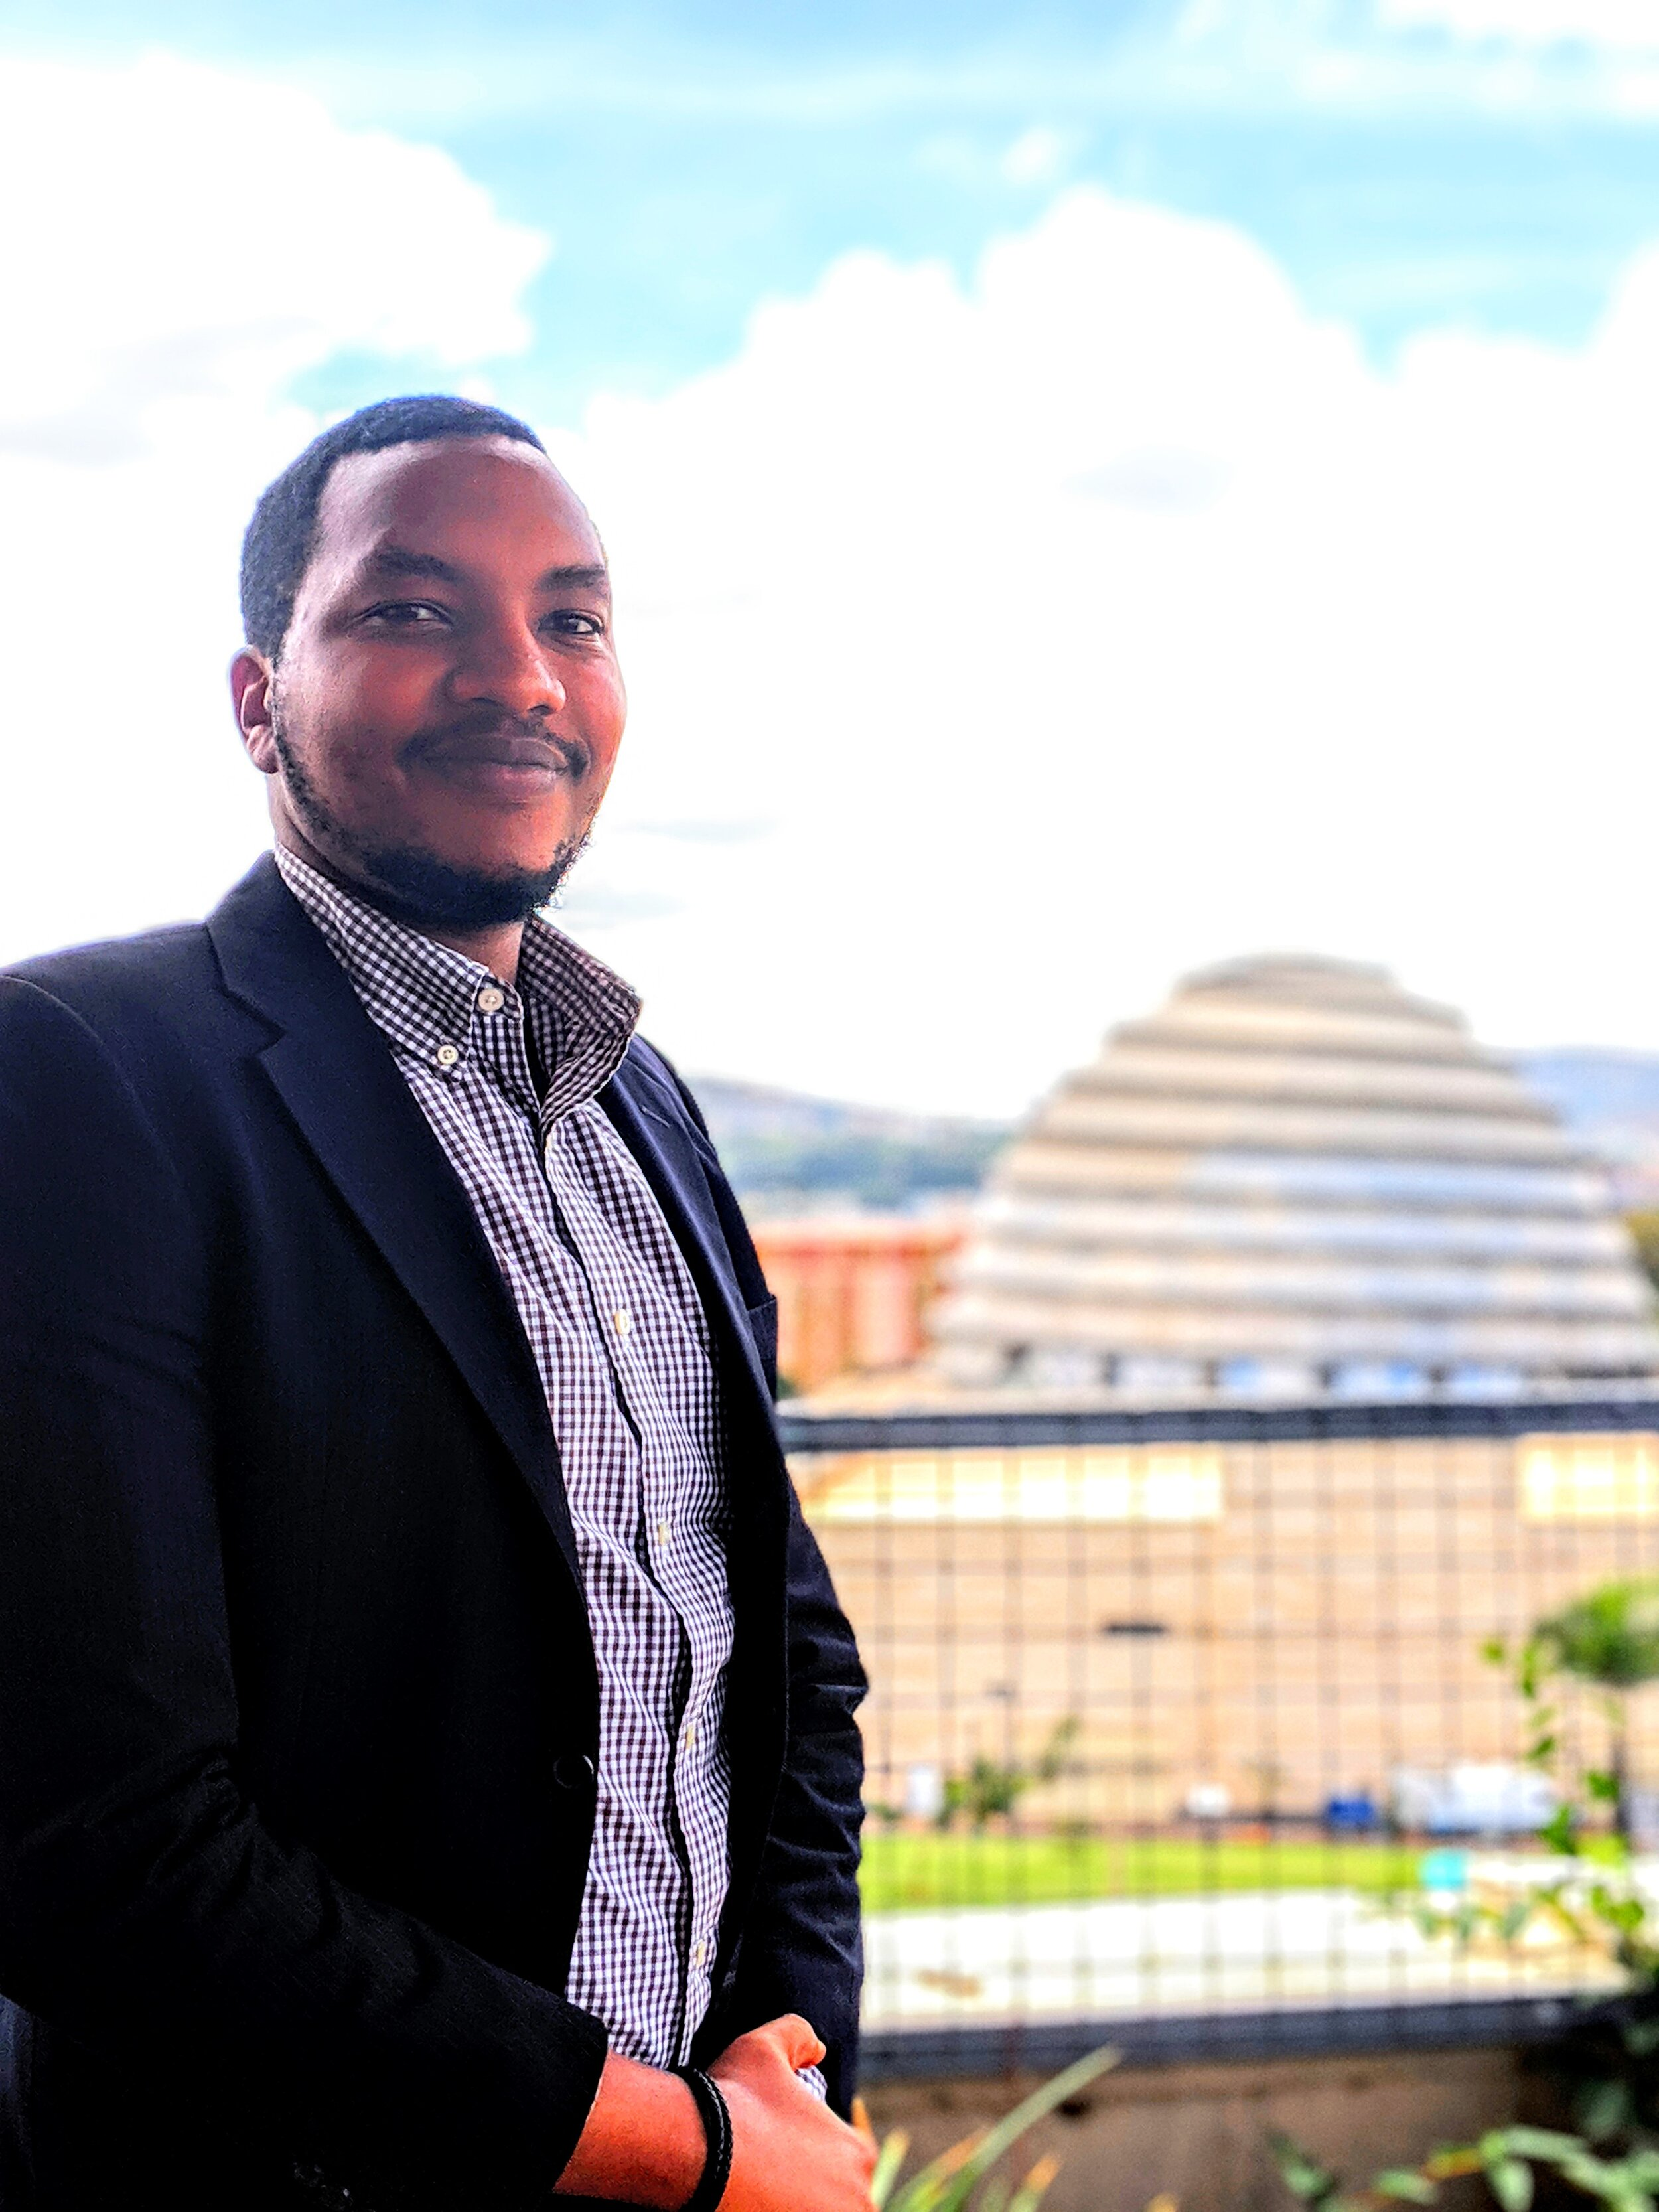 Boris Nzovu Mulisa - Boris Is the Account Manager for BeneFactors. Prior to joining BeneFactors Ltd, Boris was Sales Executive at a marketing agency and Sales Officer at MTN Rwanda. He's observant, eager to learn and fun to be around.